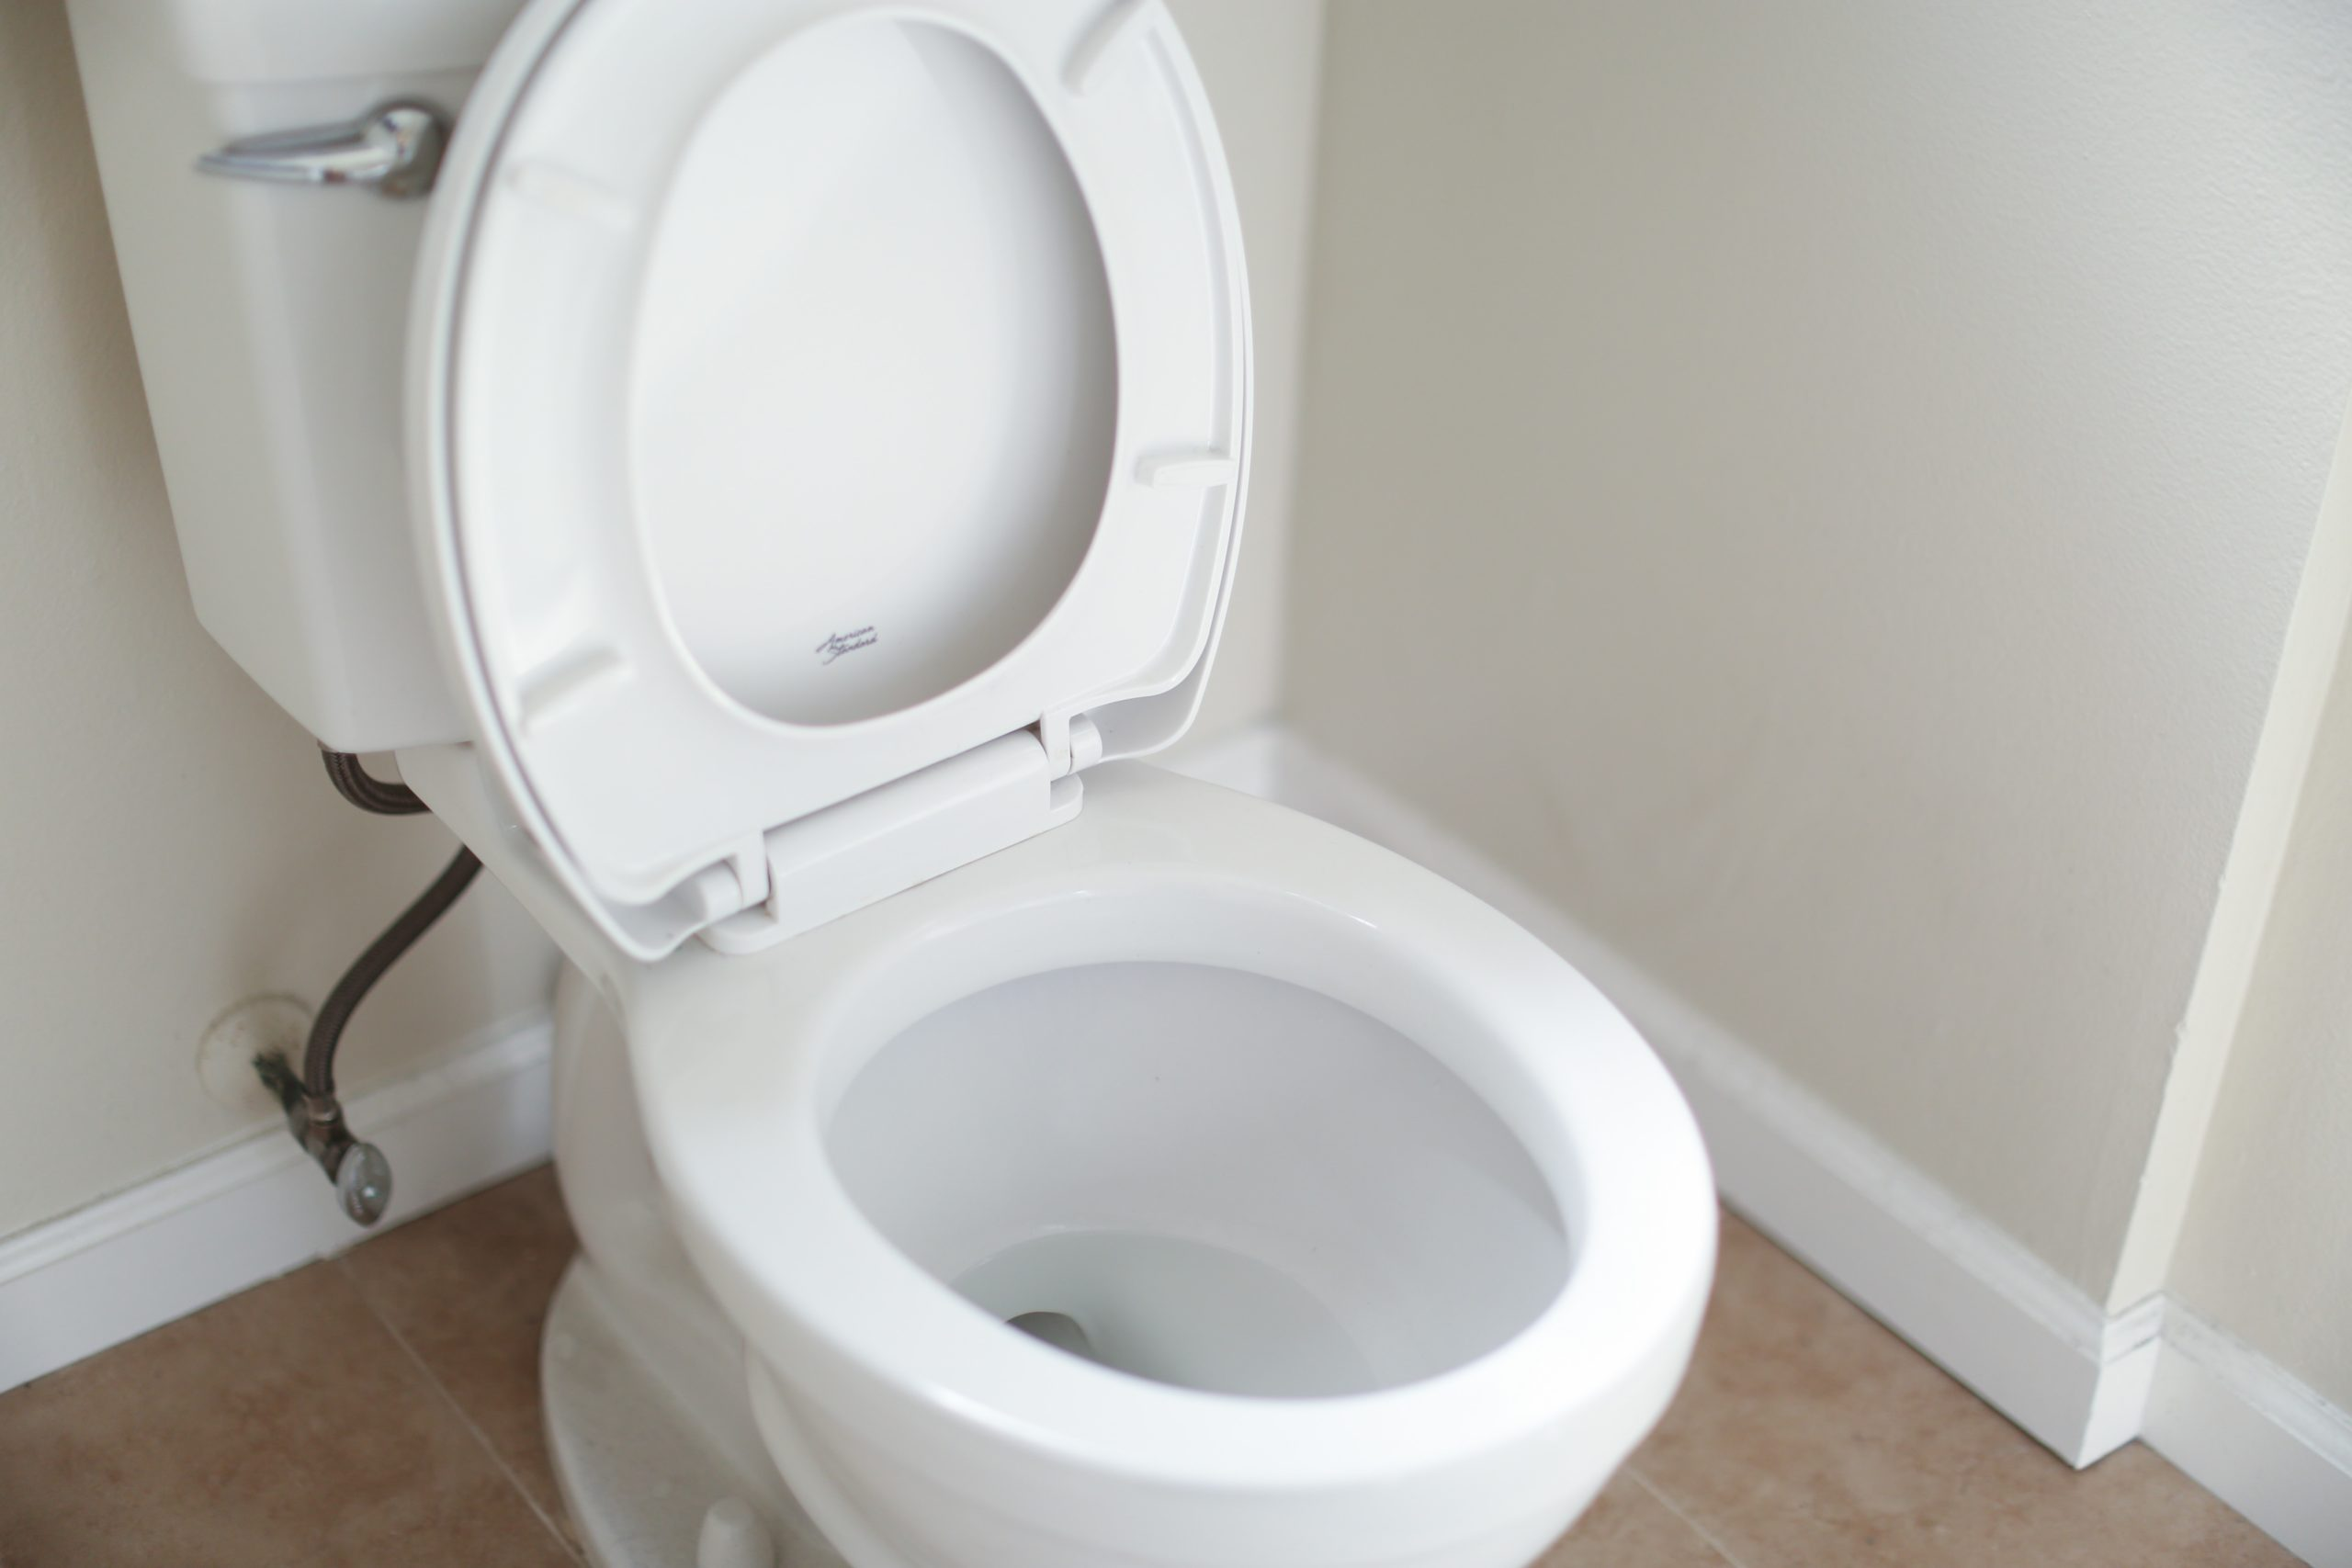 Pearly white toilet bowl